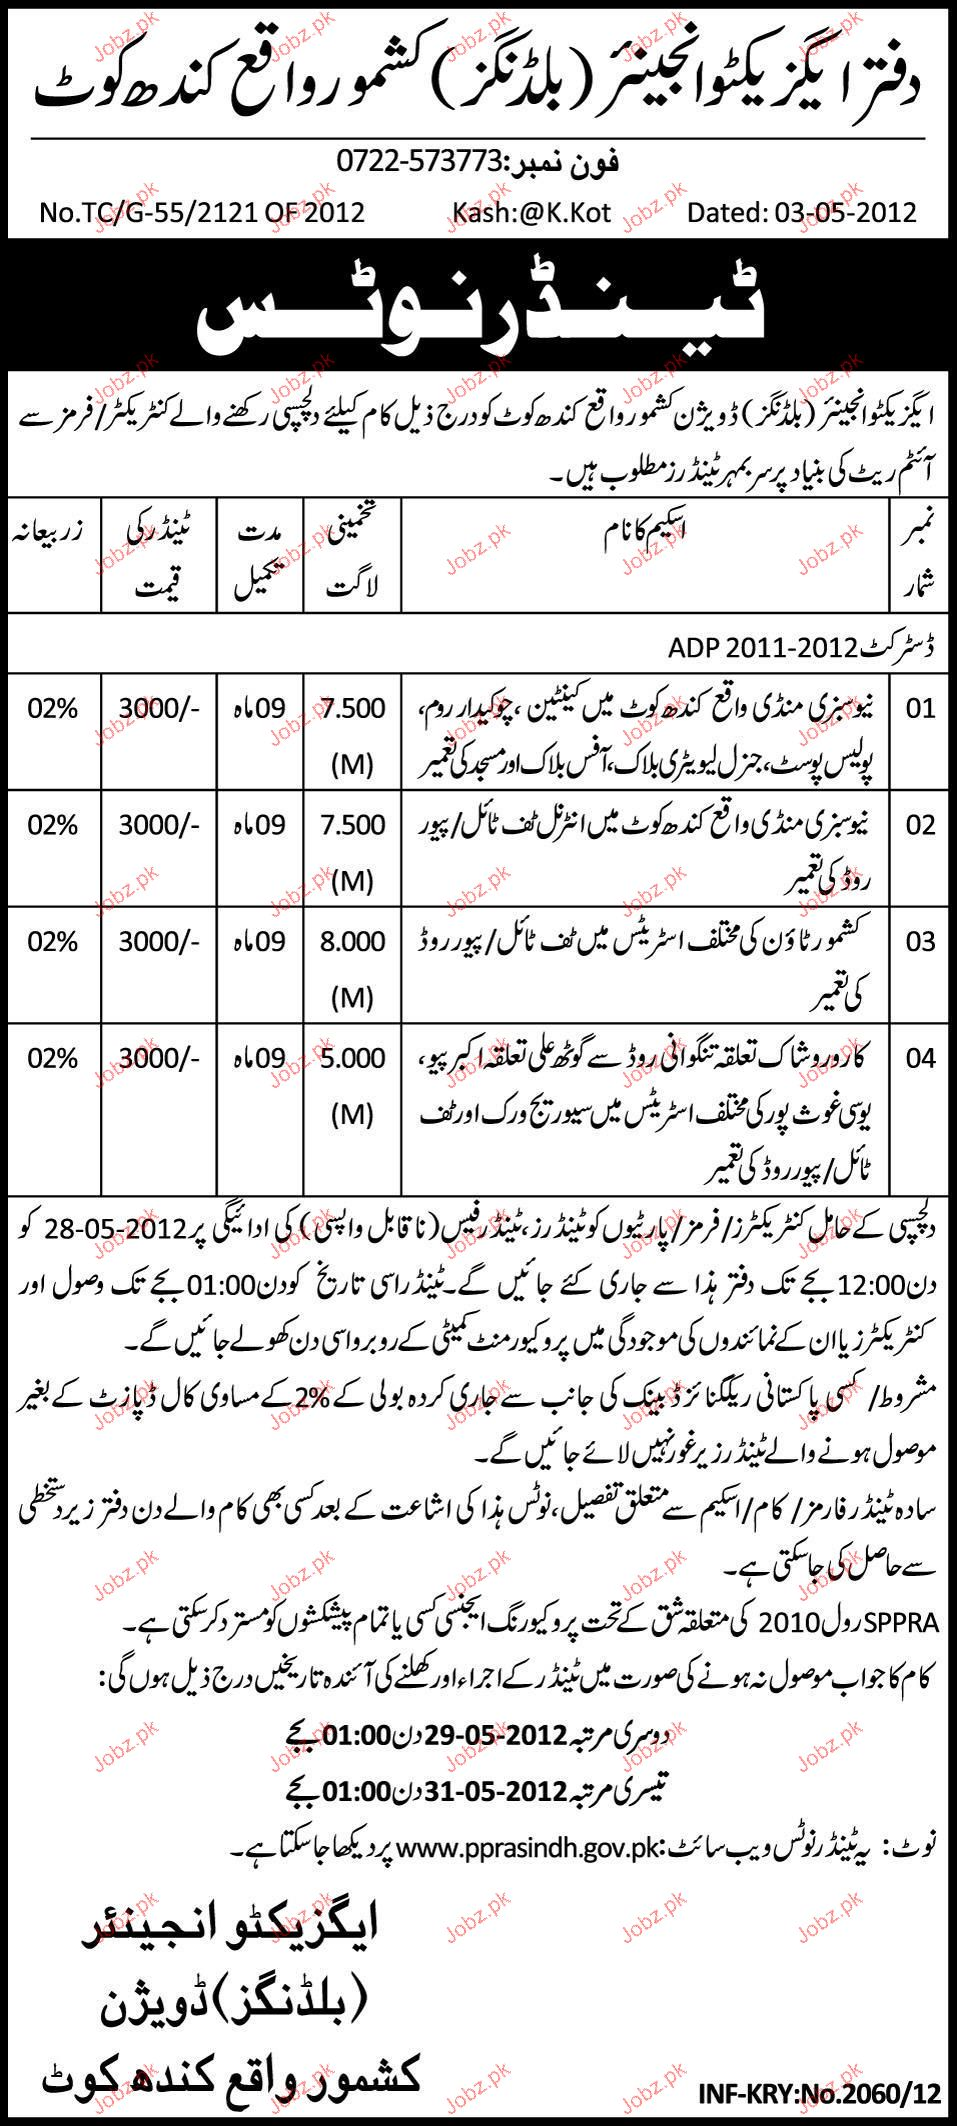 tender invited for construction of office blocka mosque 2018 government tenders none kand kot. Black Bedroom Furniture Sets. Home Design Ideas